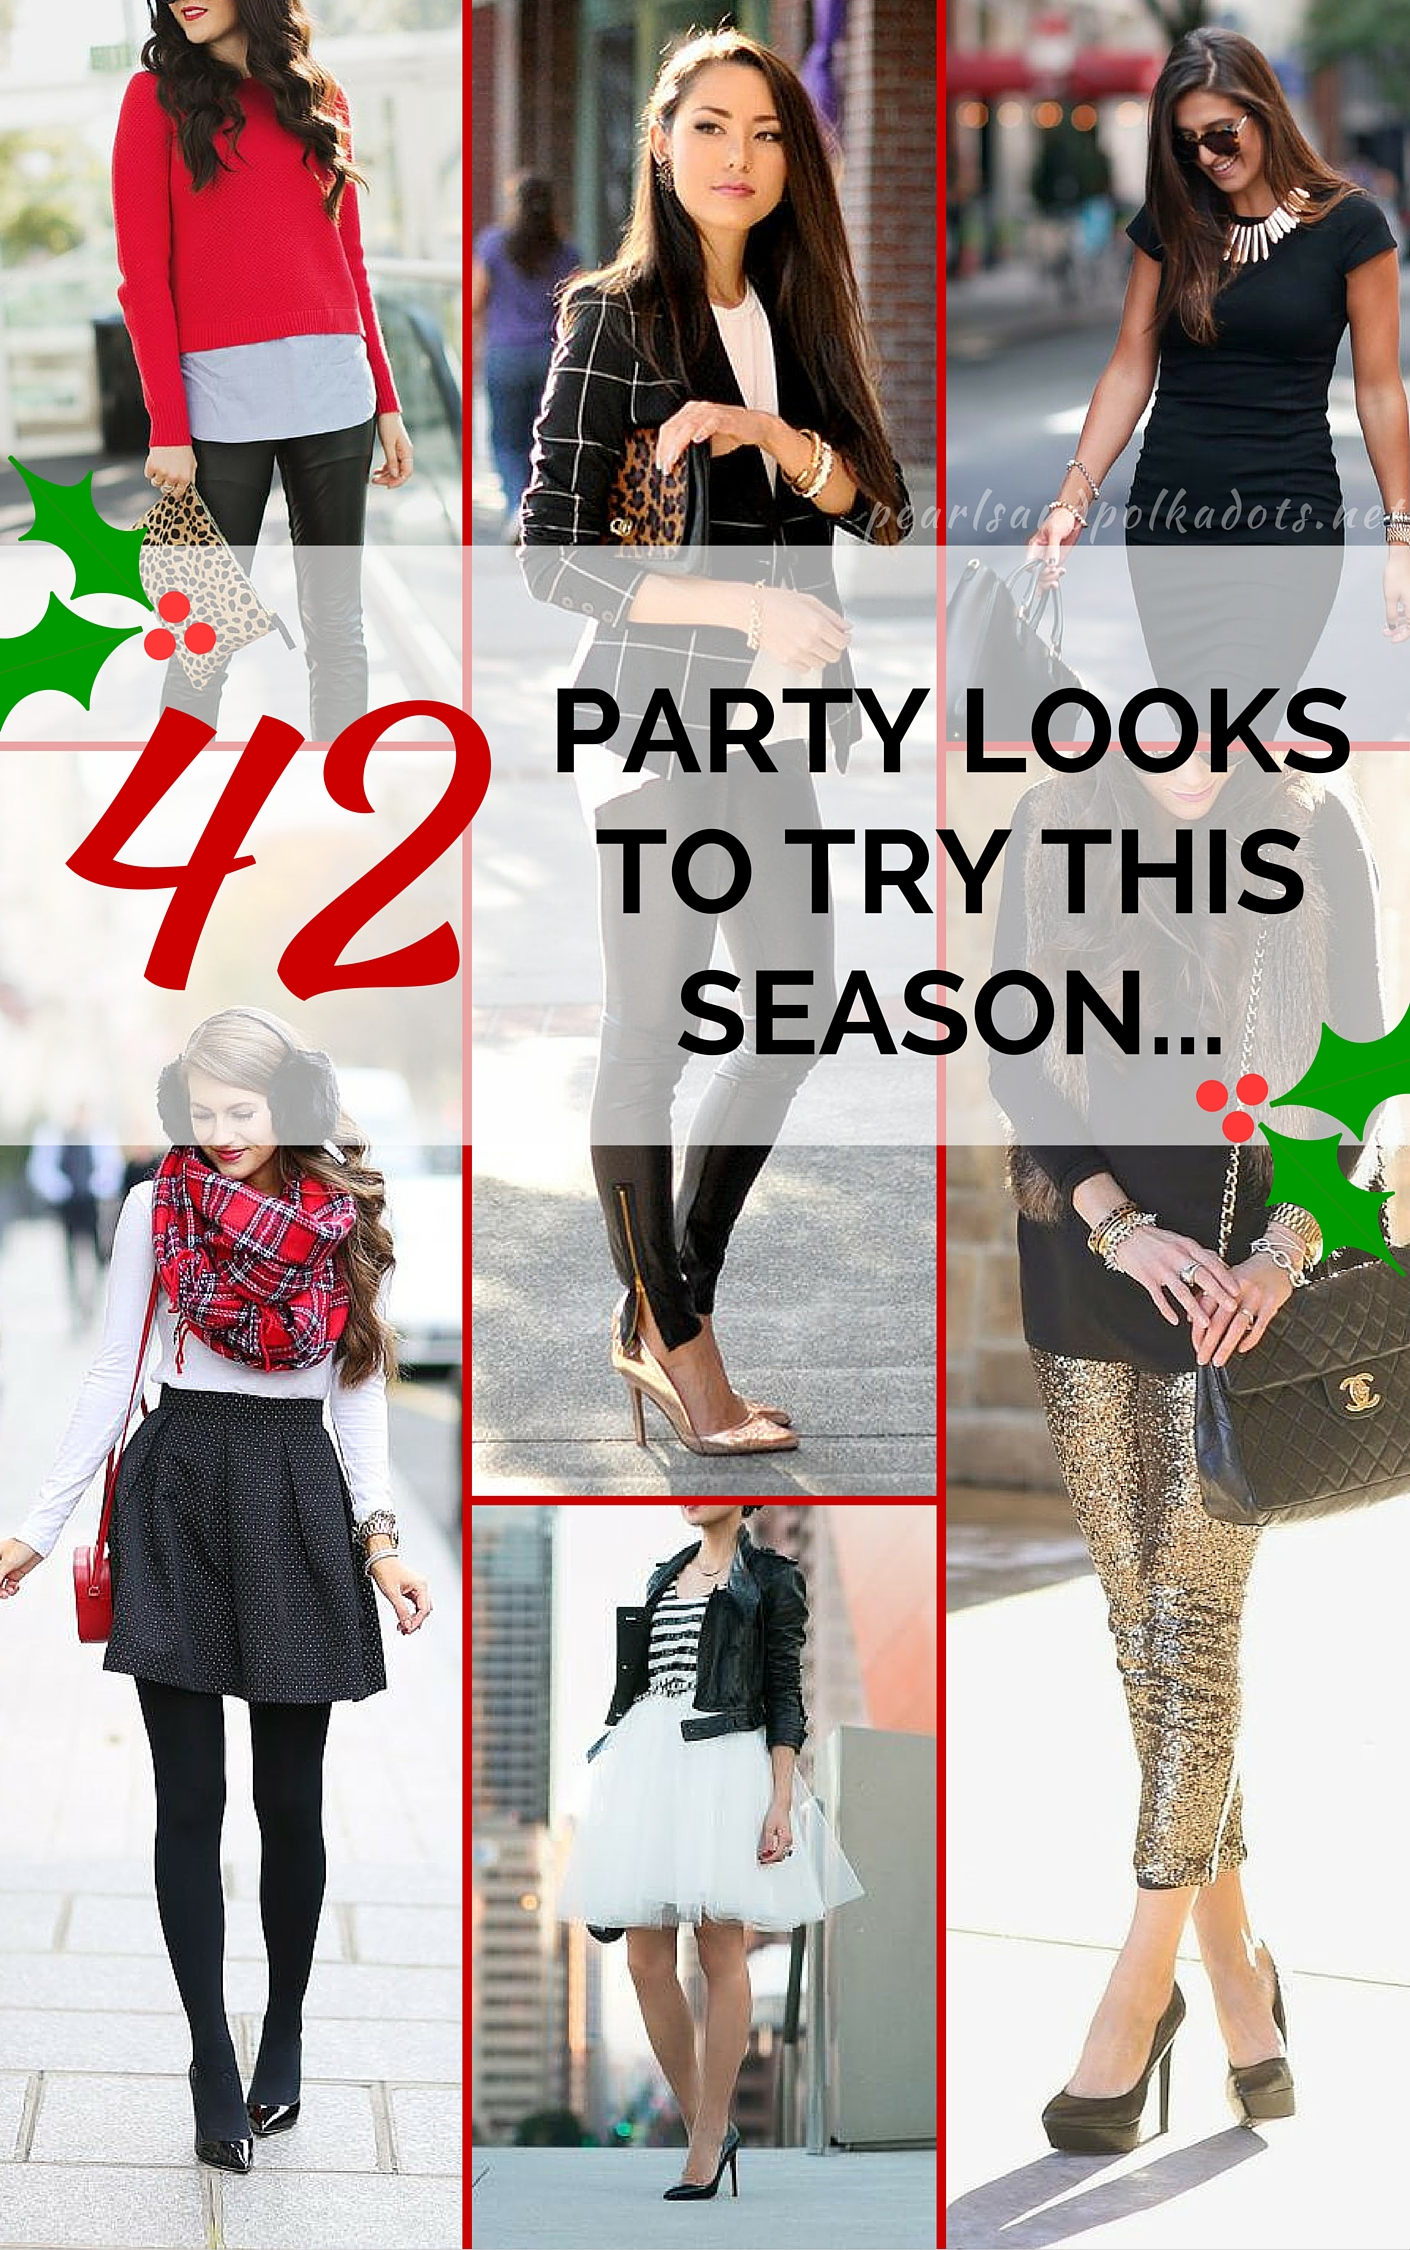 42 Party Looks to Try this Season…